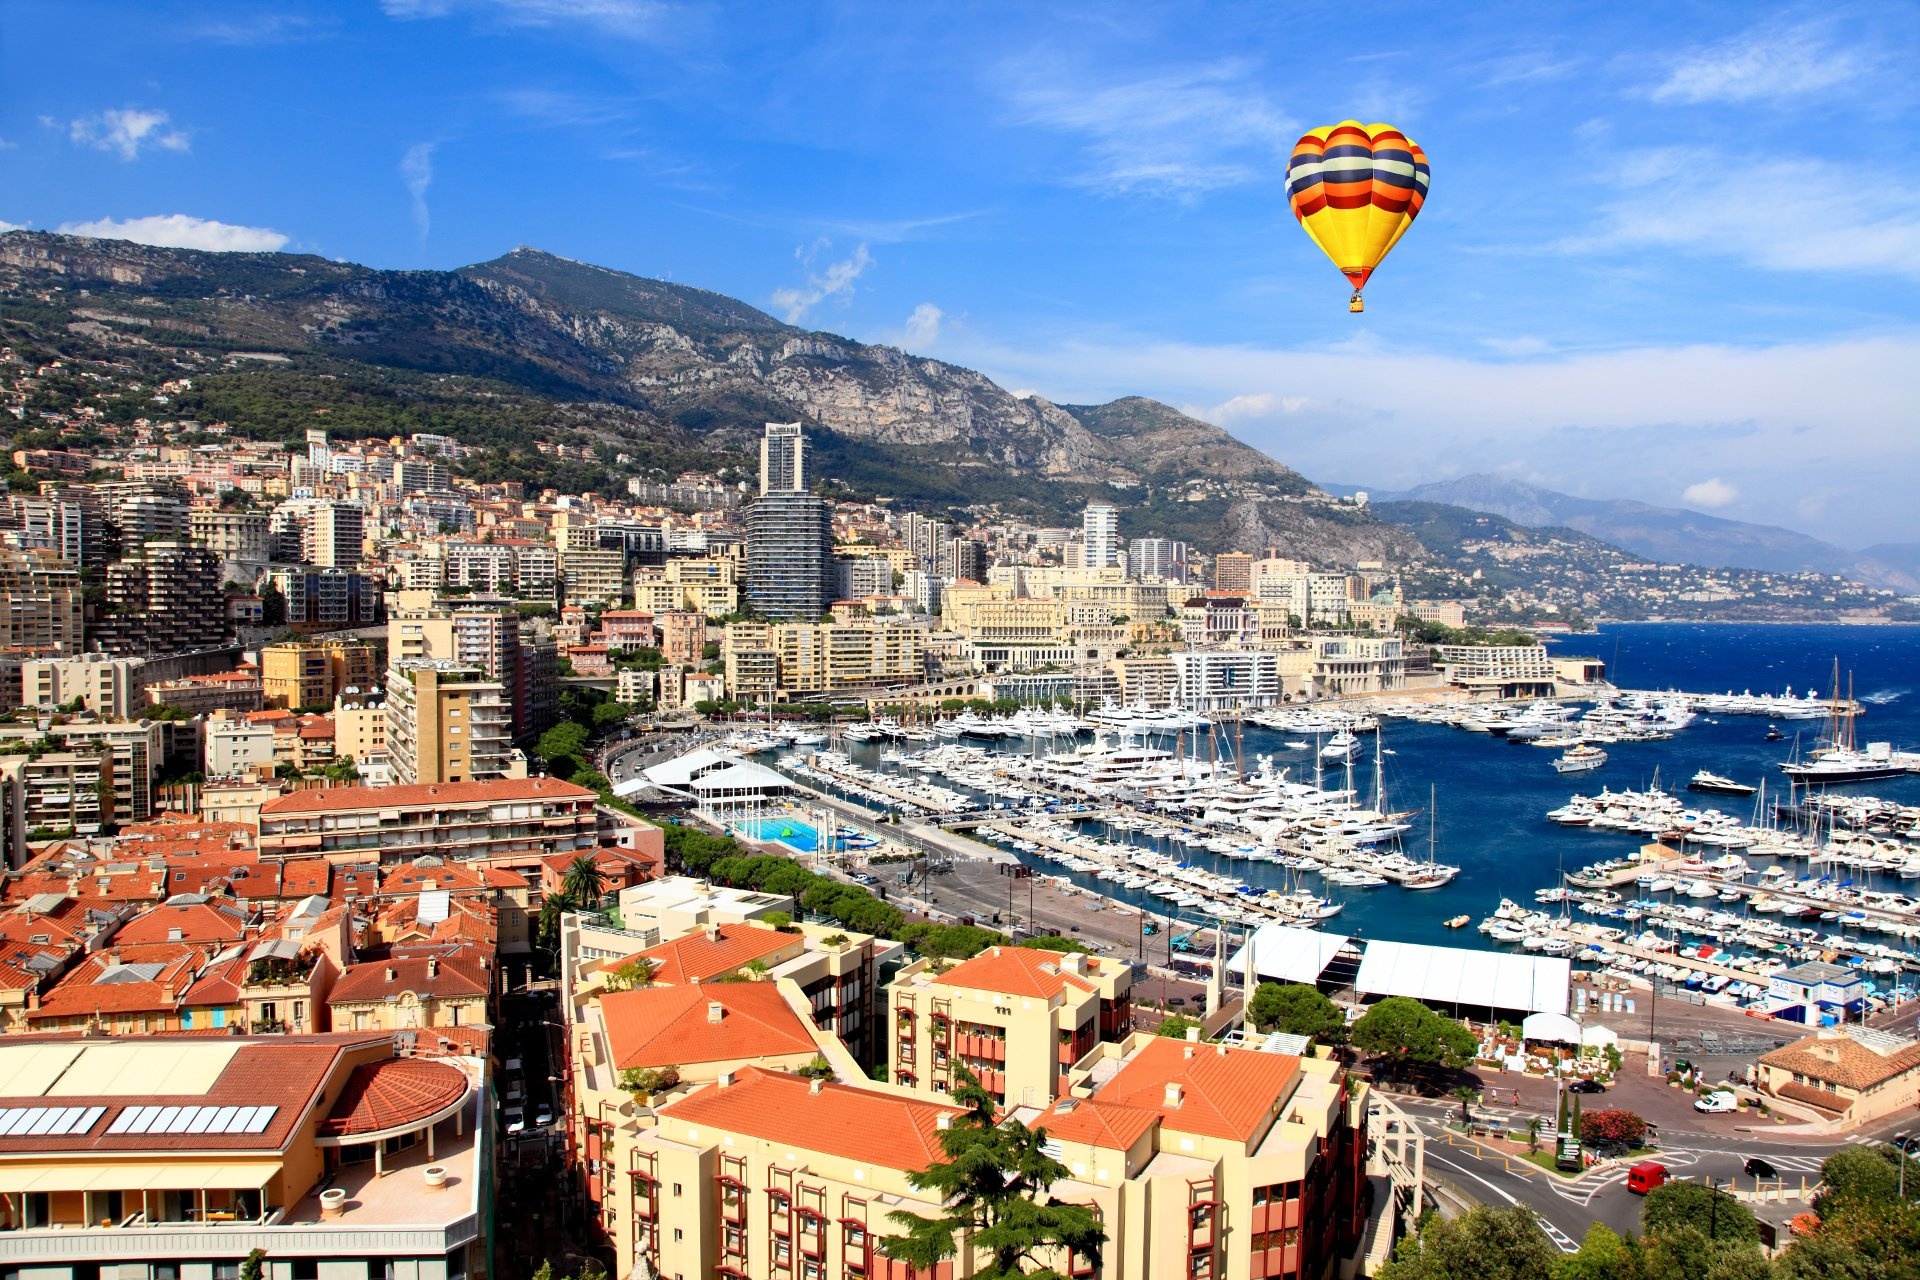 aerial view of monaco Harbour